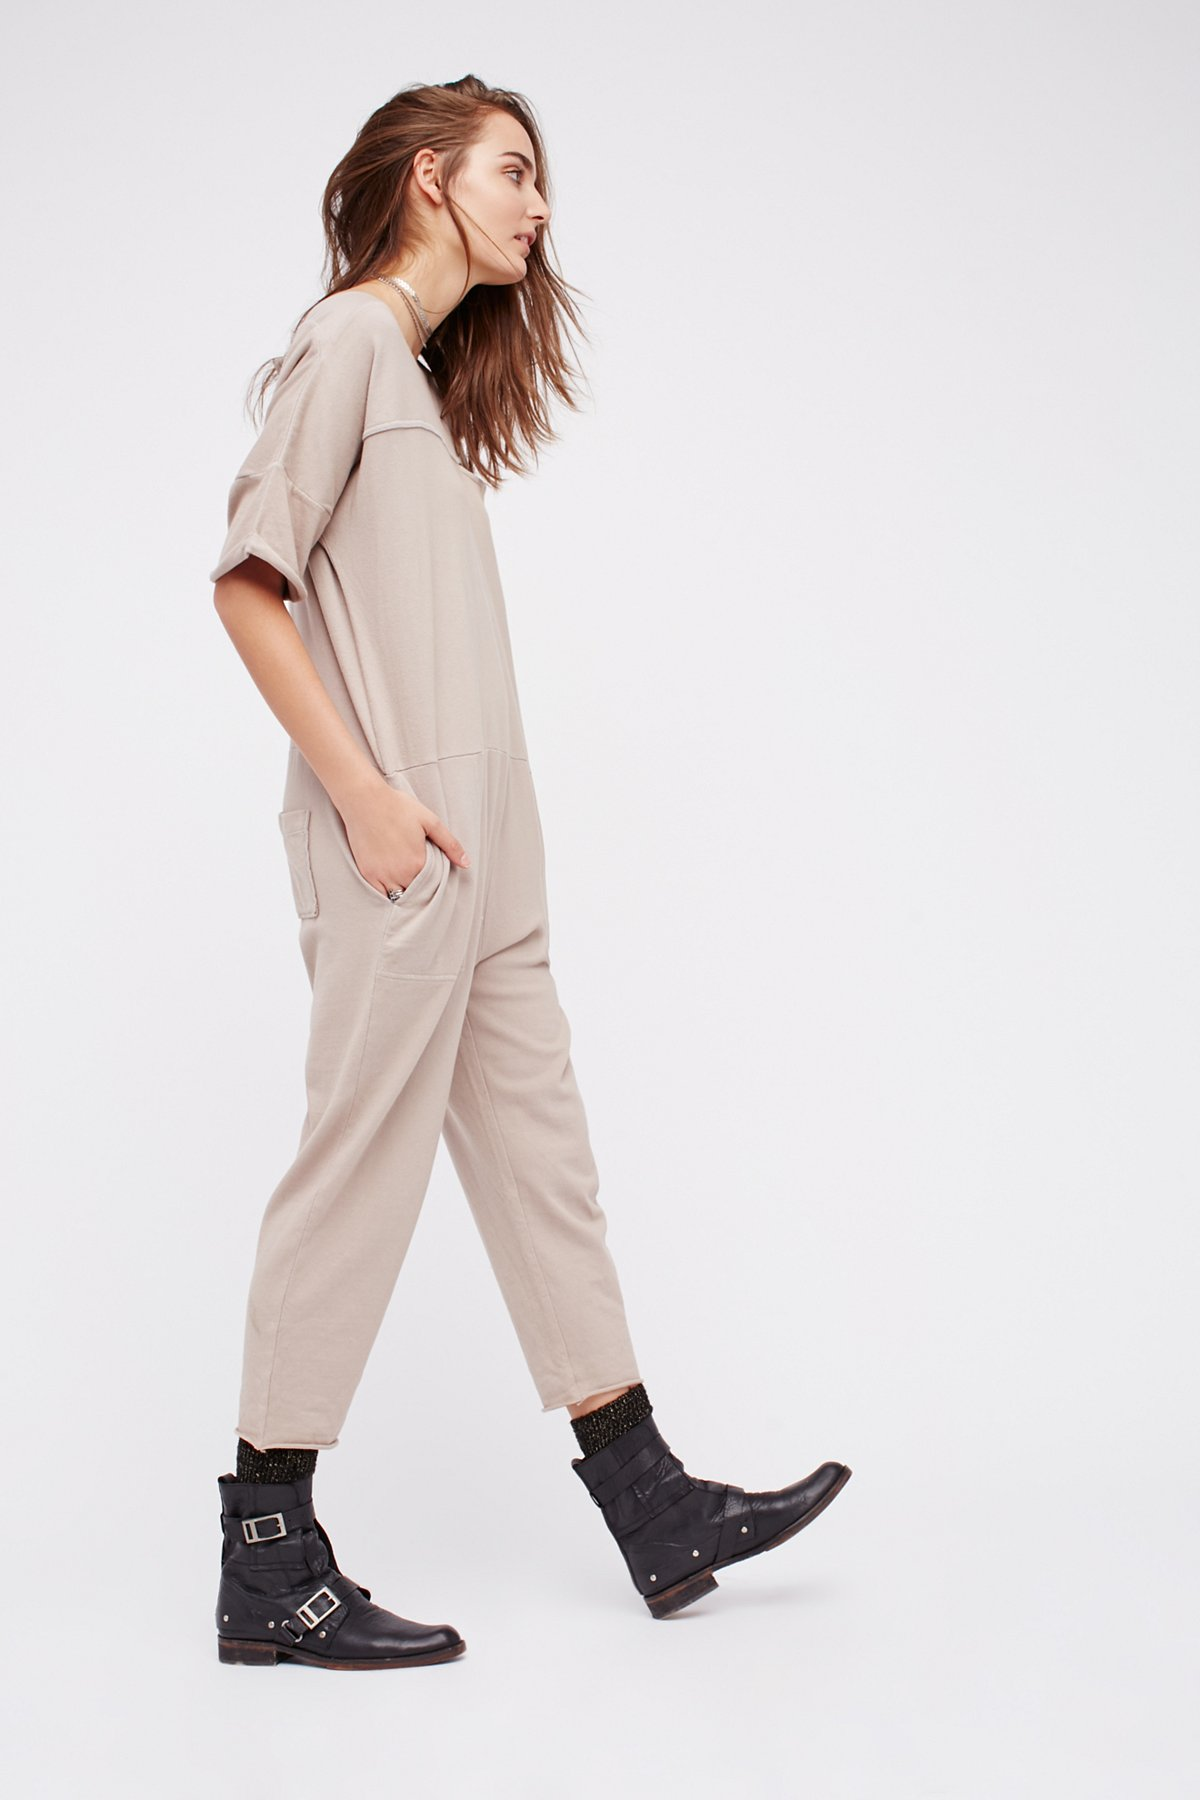 In The Yard Jumpsuit